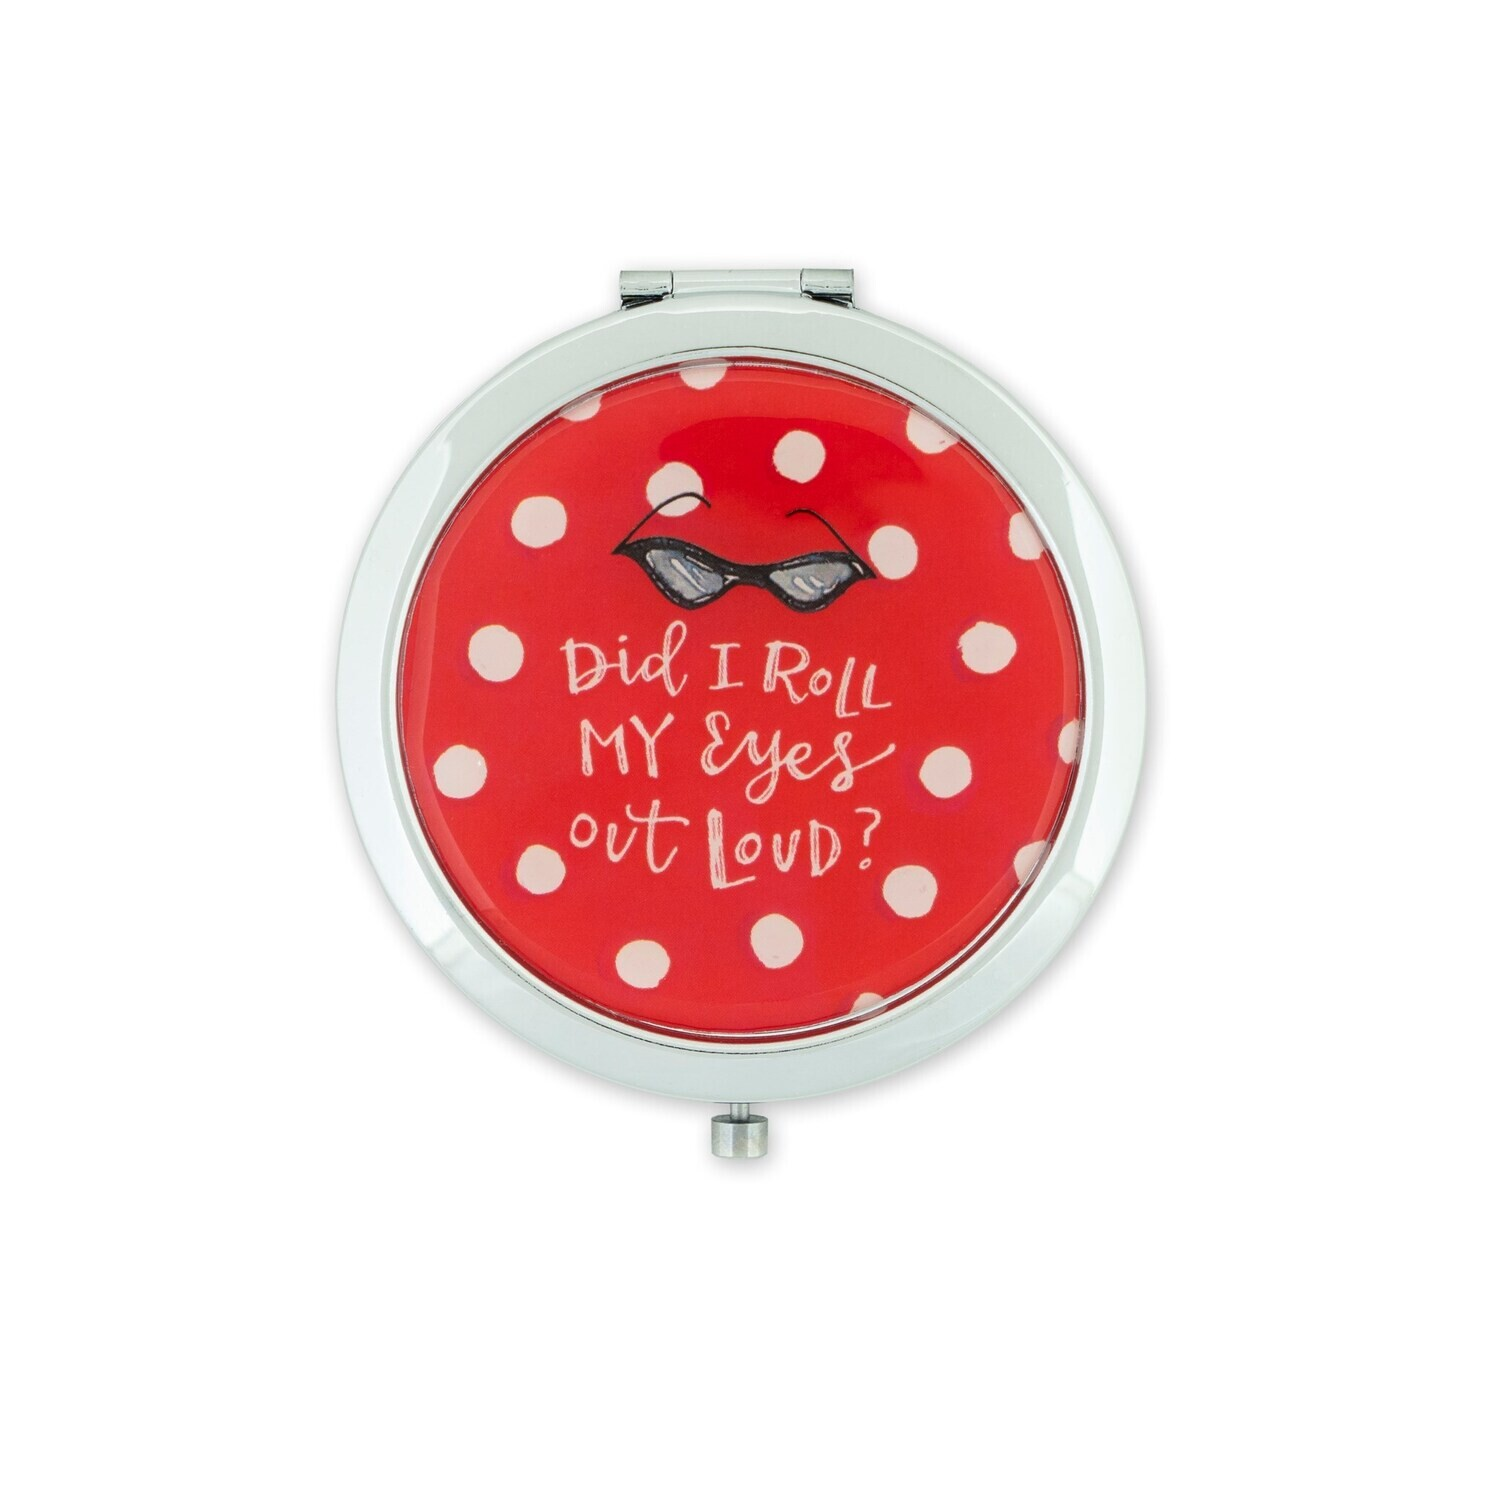 Brownlow 79602 Roll My Eyes Compact Mirror